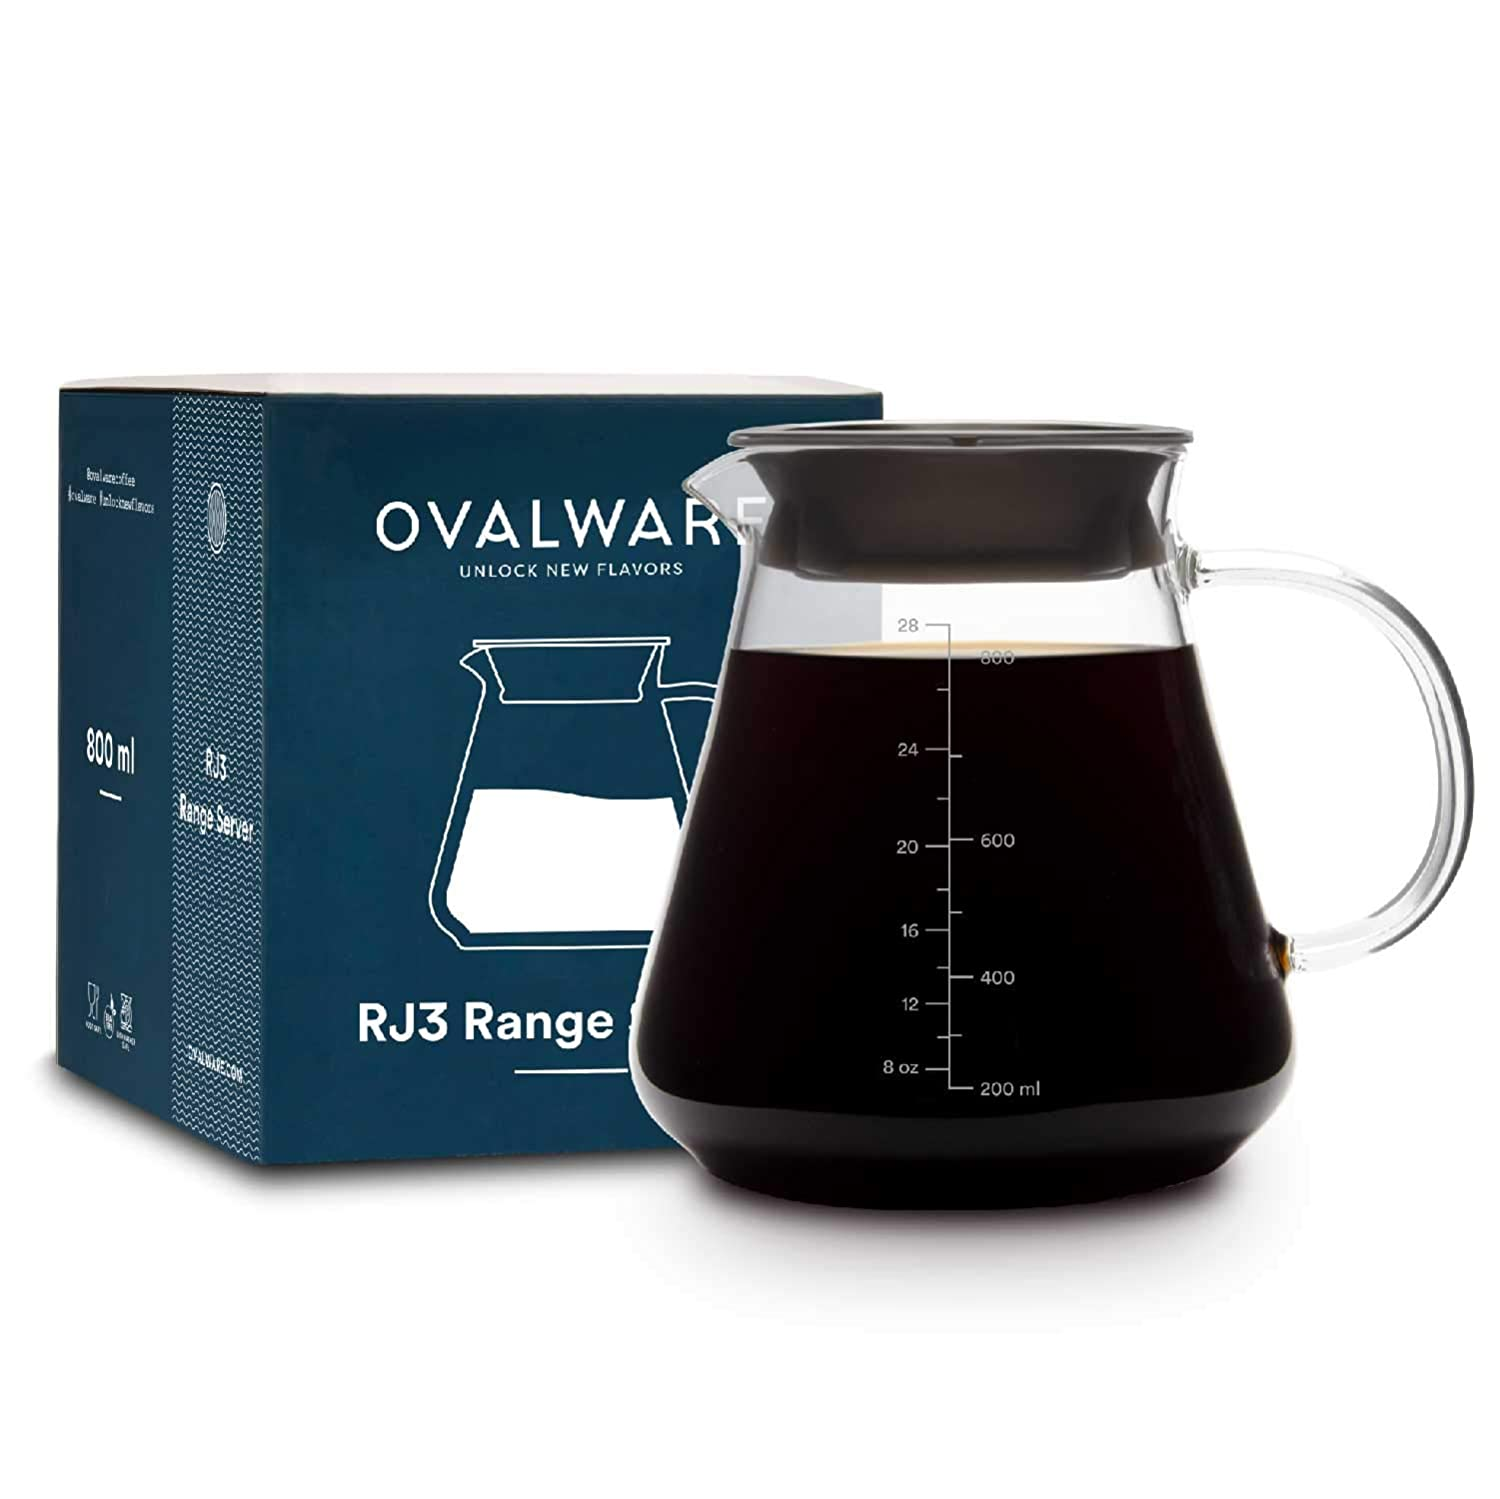 Coffee Server RJ3 Range By Ovalware – 2.5mm Thick, Microwave Safe & Heatproof Glass Body That Prevents Heat Loss – BPA Free Lid – Minimal Design - Easy To Use & Clean – Ideal For Coffee & Tea Brewing